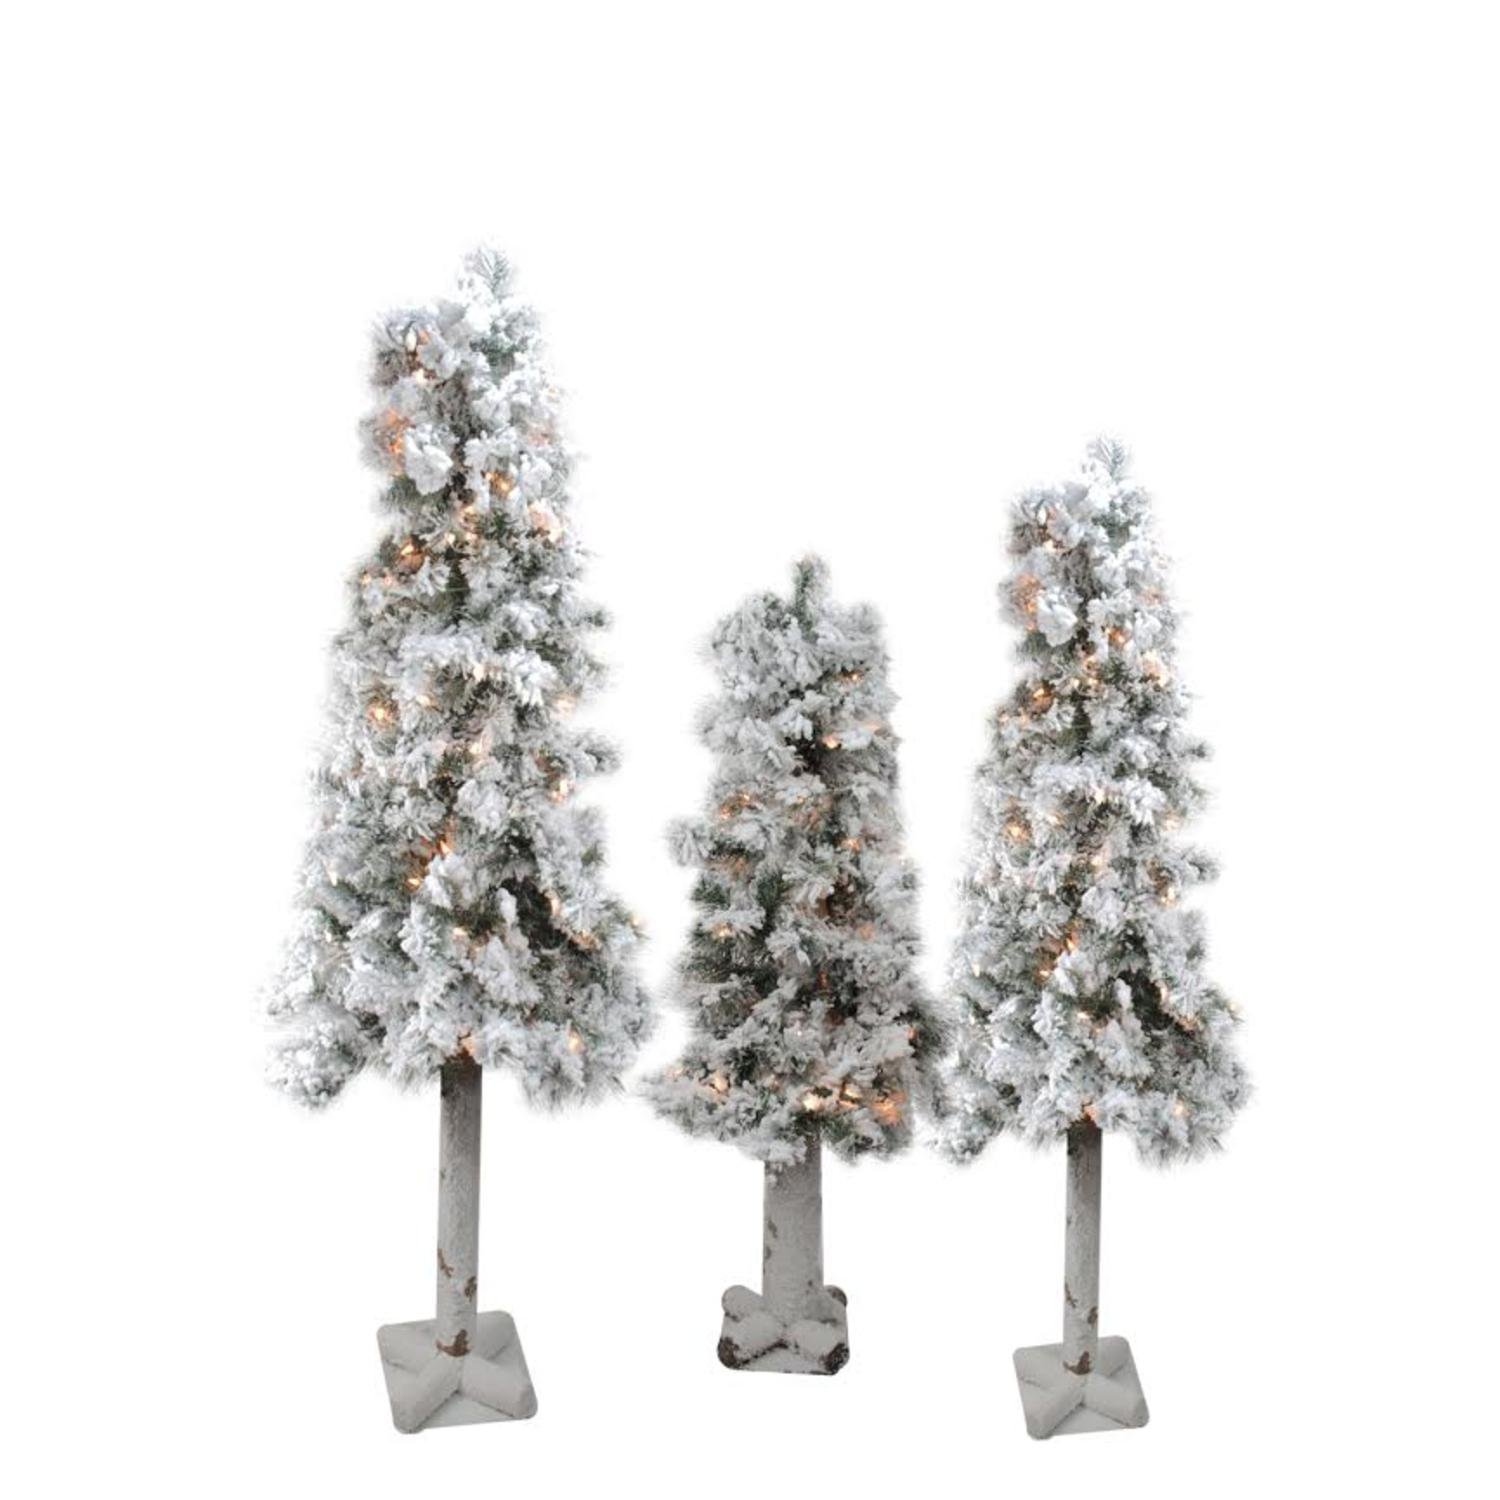 Set of 3 Pre-Lit Flocked Woodland Alpine Artificial Christmas Trees 3', 4' and 5' - Clear Lights